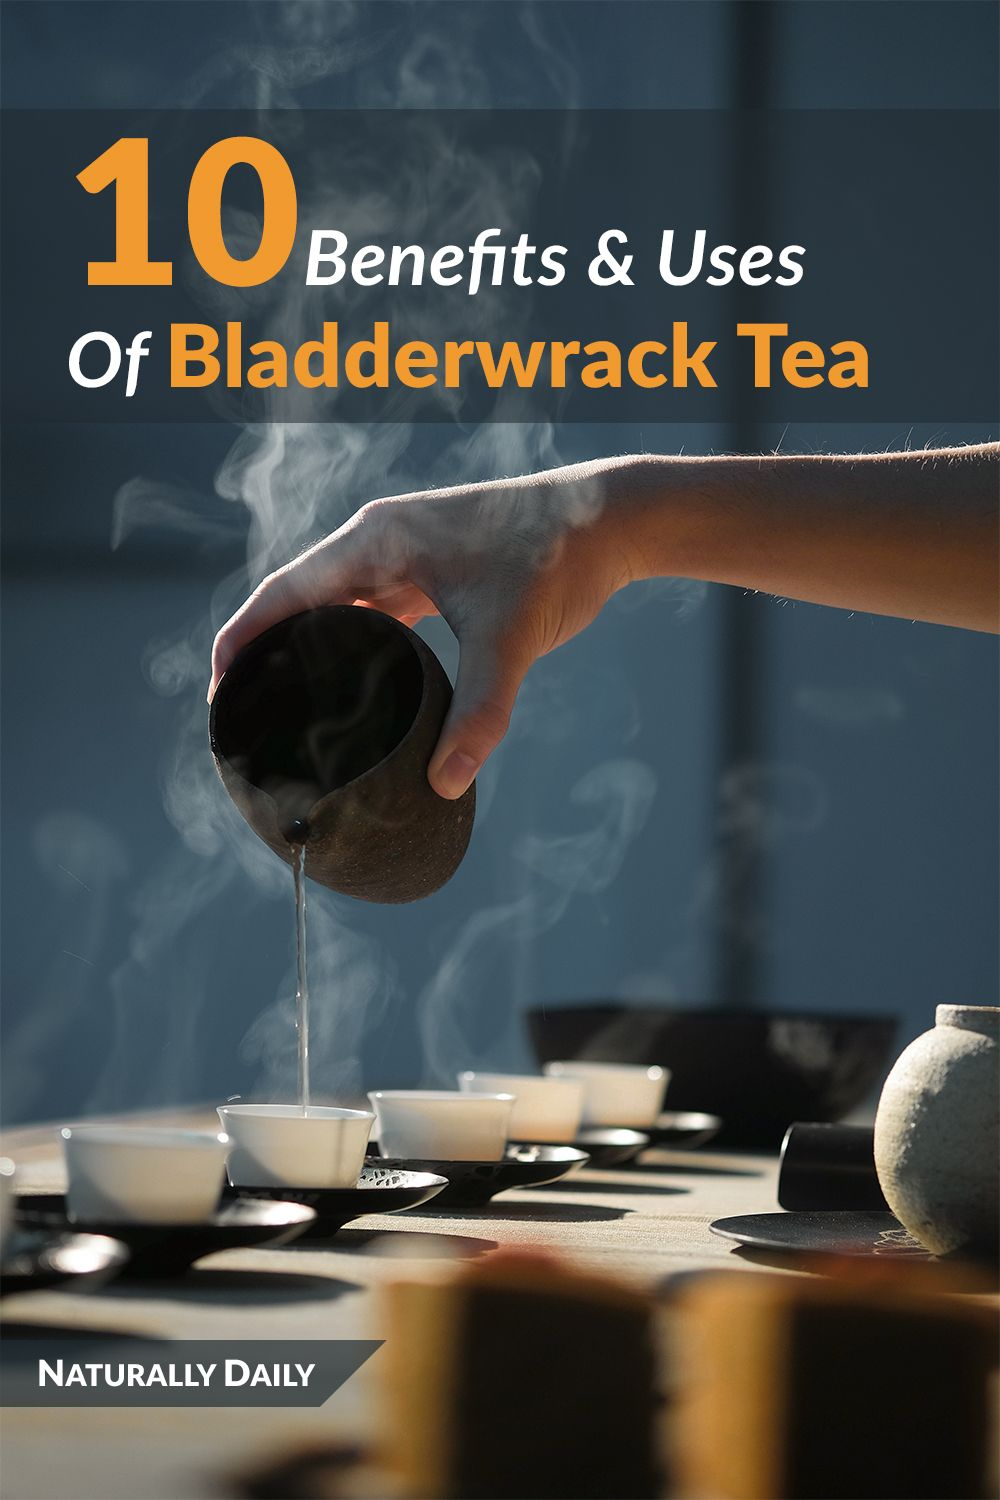 Bladderwrack seaweed and tea benefits and uses for health